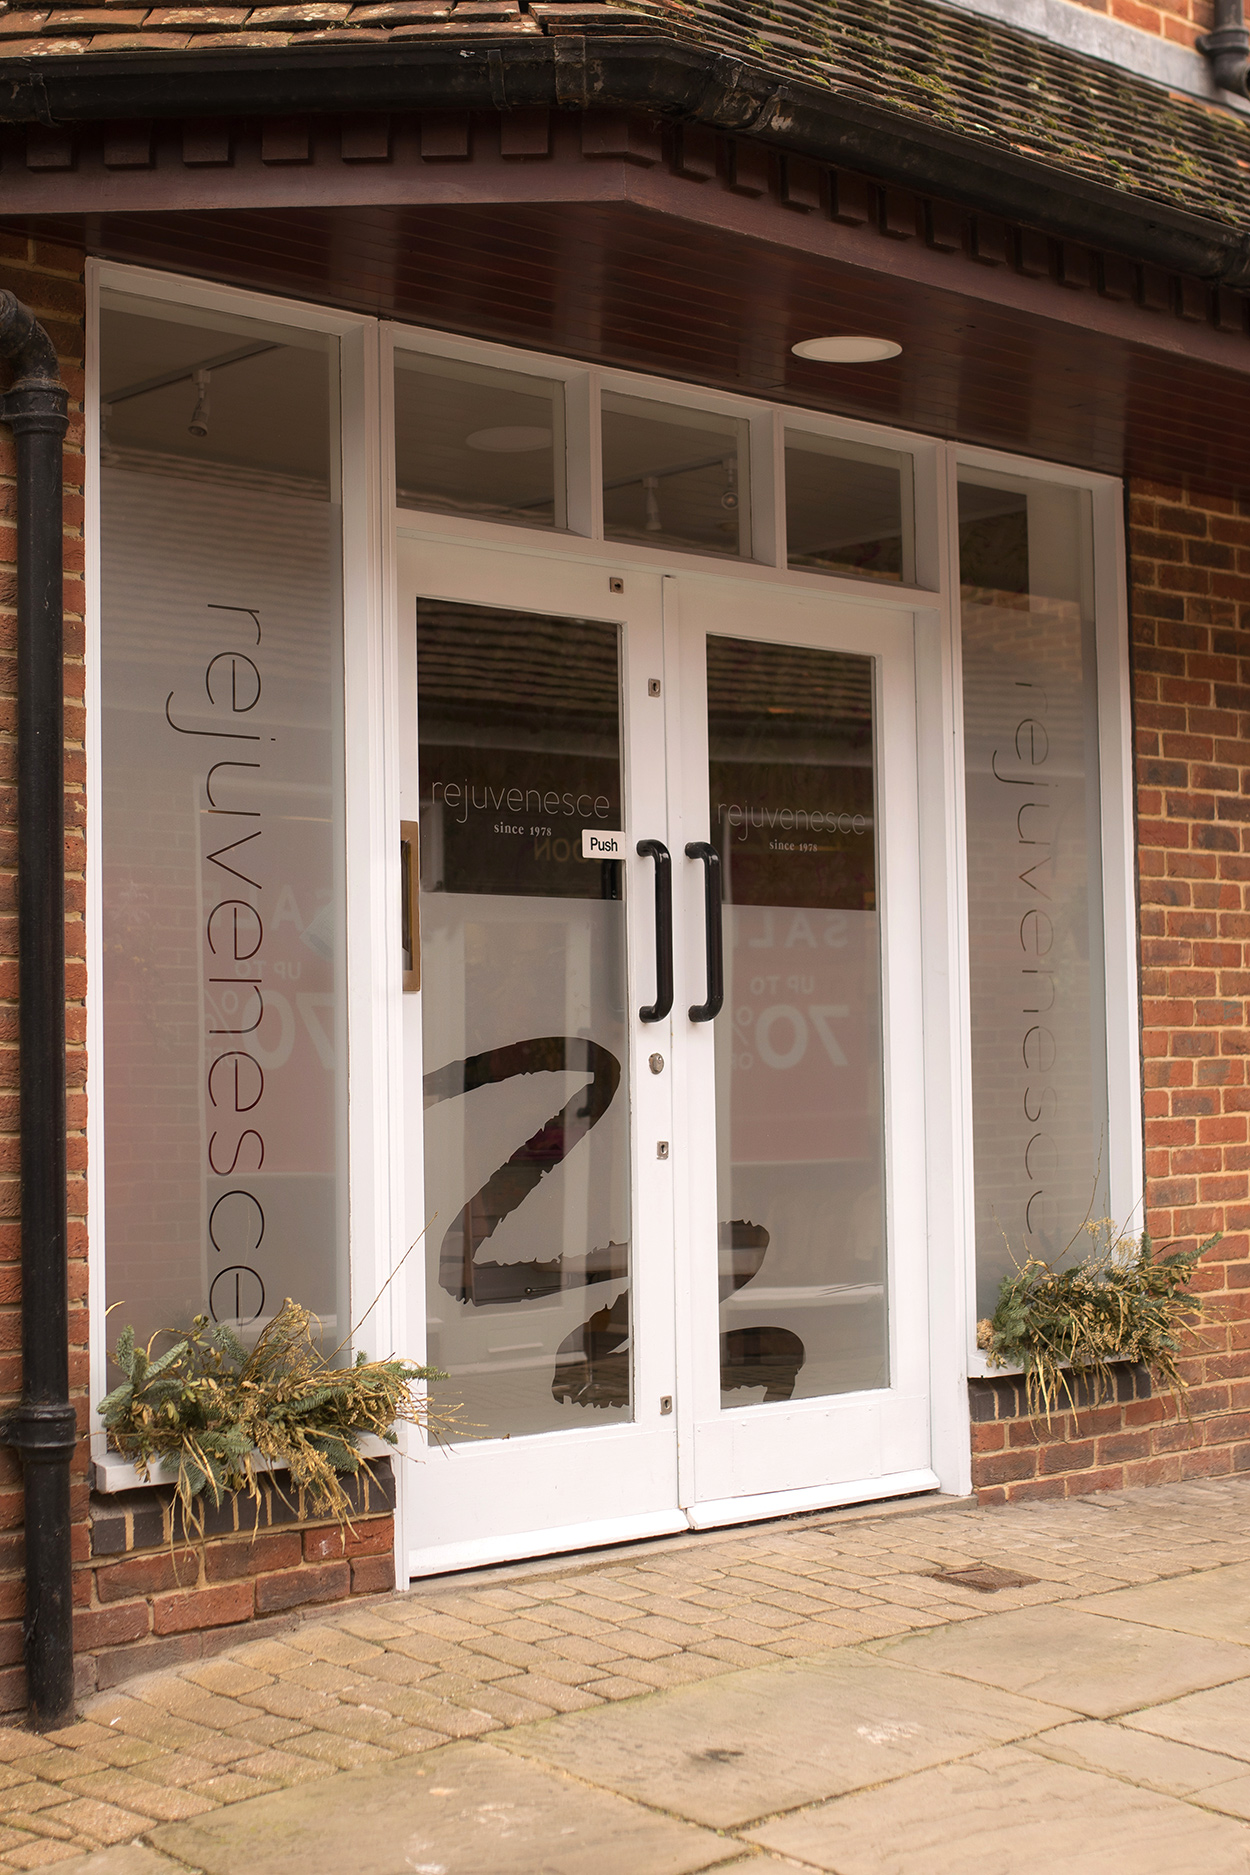 Hanging Signs and window frosting for beauty salon brand Rejuvenesce in Marlborough - Designed by Wiltshire-based graphic designer, Kaye Huett